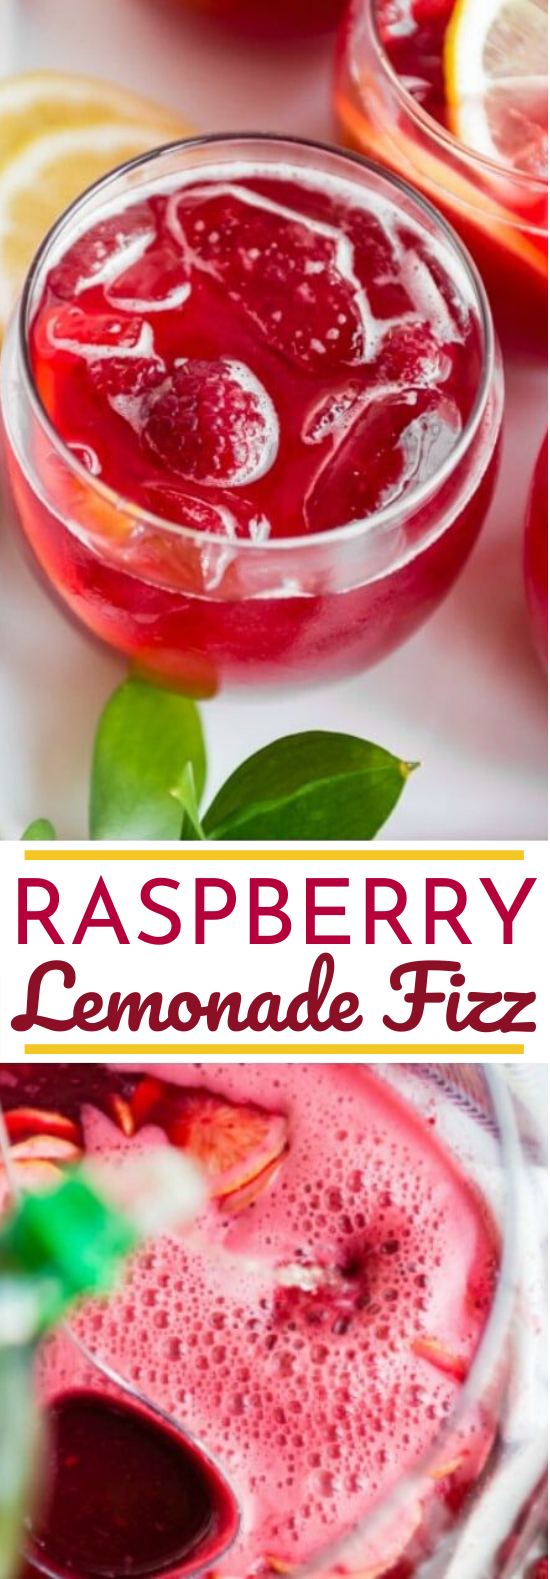 Raspberry Lemonade Fizz #drinks #recipe #nonalcohol #lemonade #summer